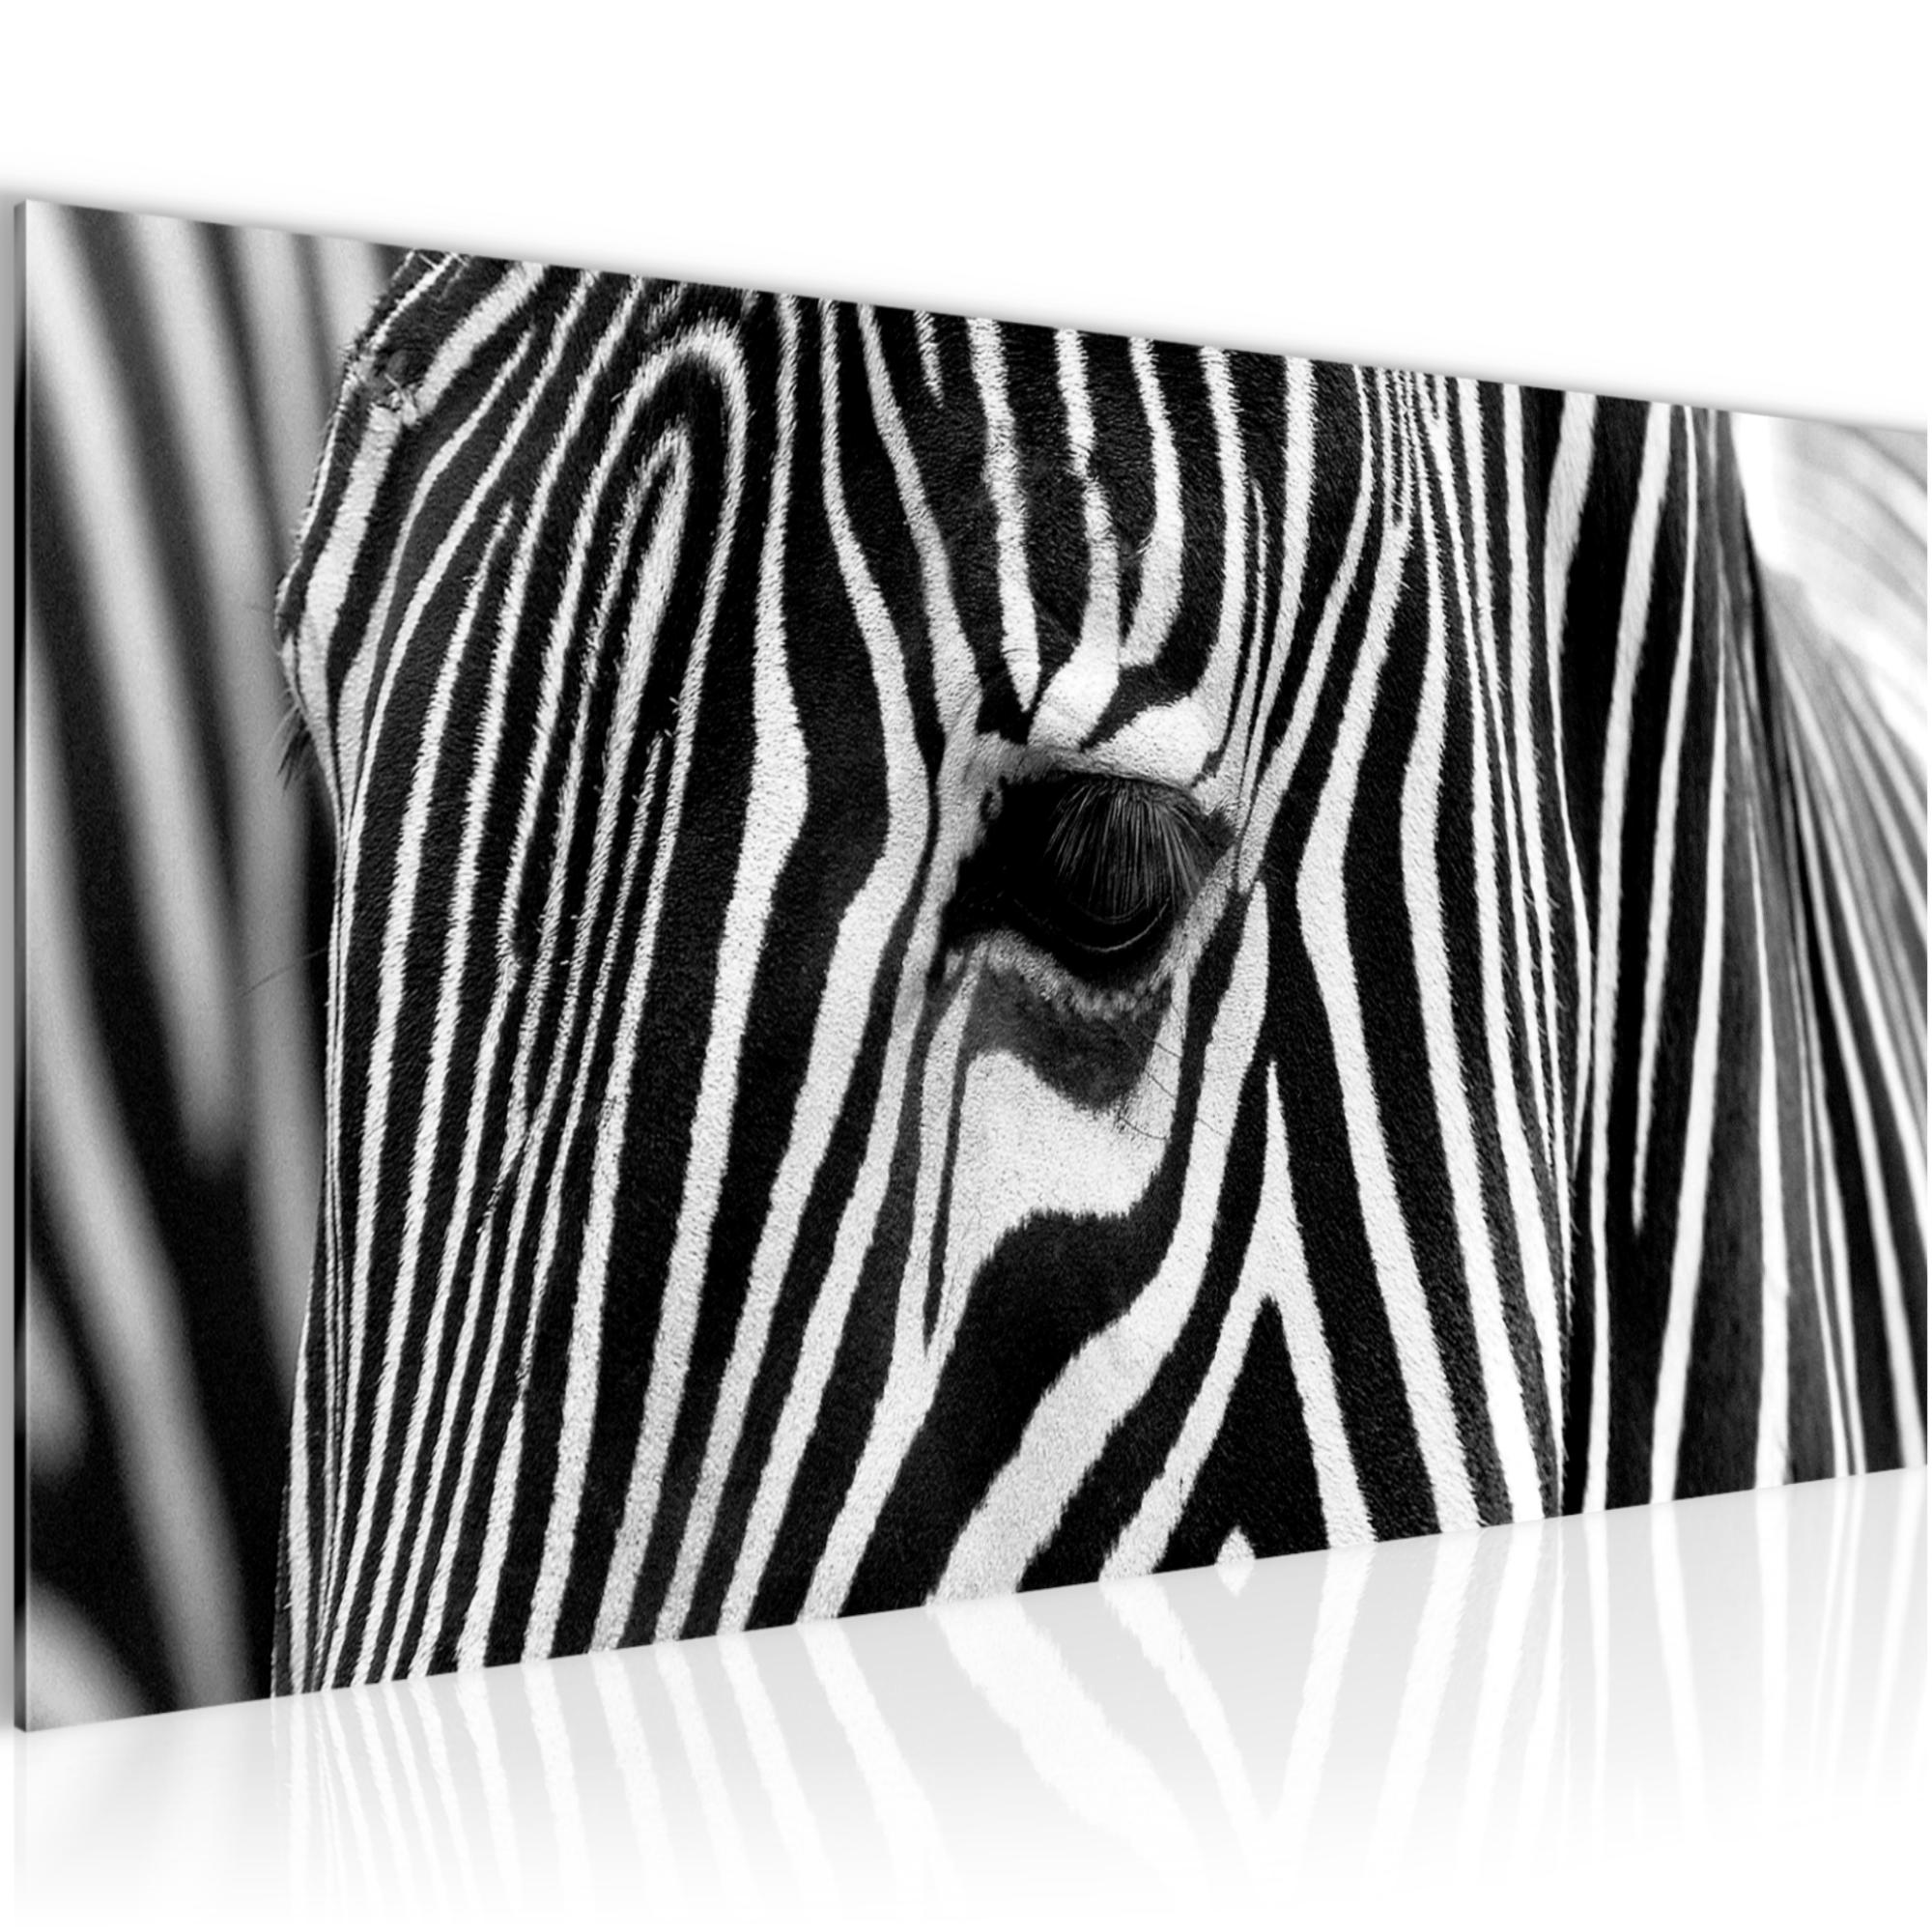 afrika zebra bild kunstdruck auf vlies leinwand xxl dekoration 001412p. Black Bedroom Furniture Sets. Home Design Ideas